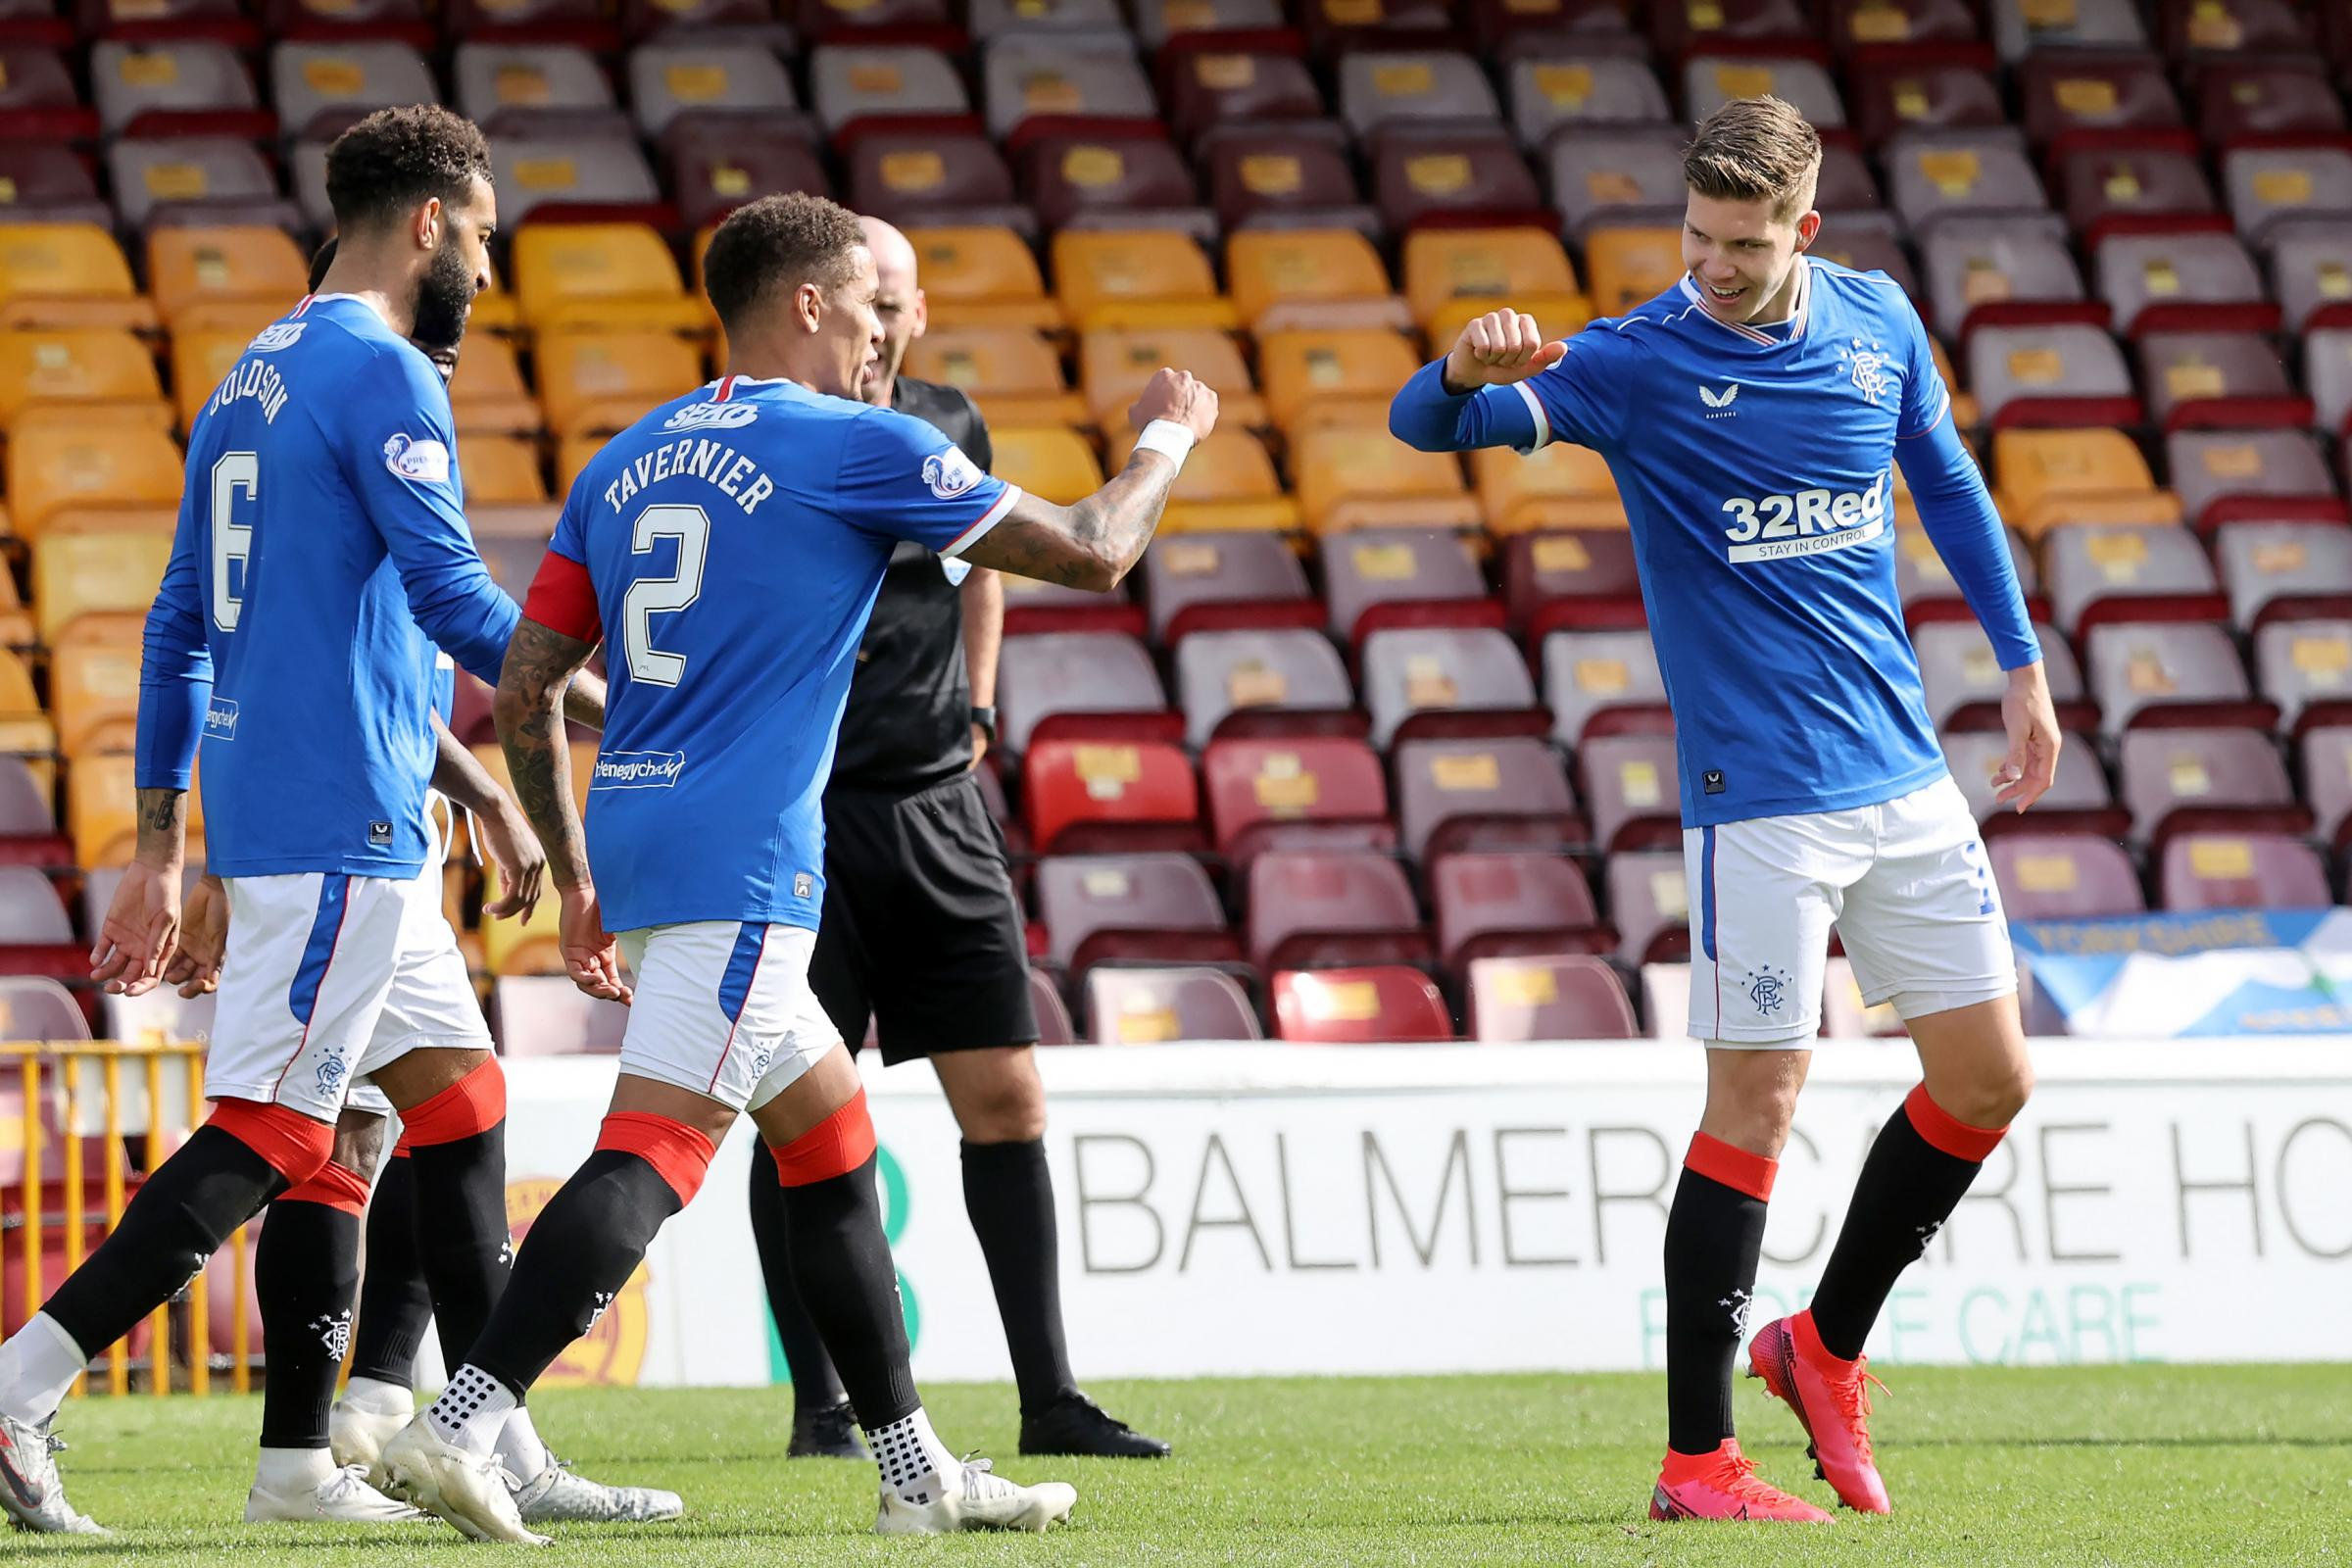 Swiss youth boss on Cedric Itten's mentality and ability as he backs Rangers striker to shine for club and country